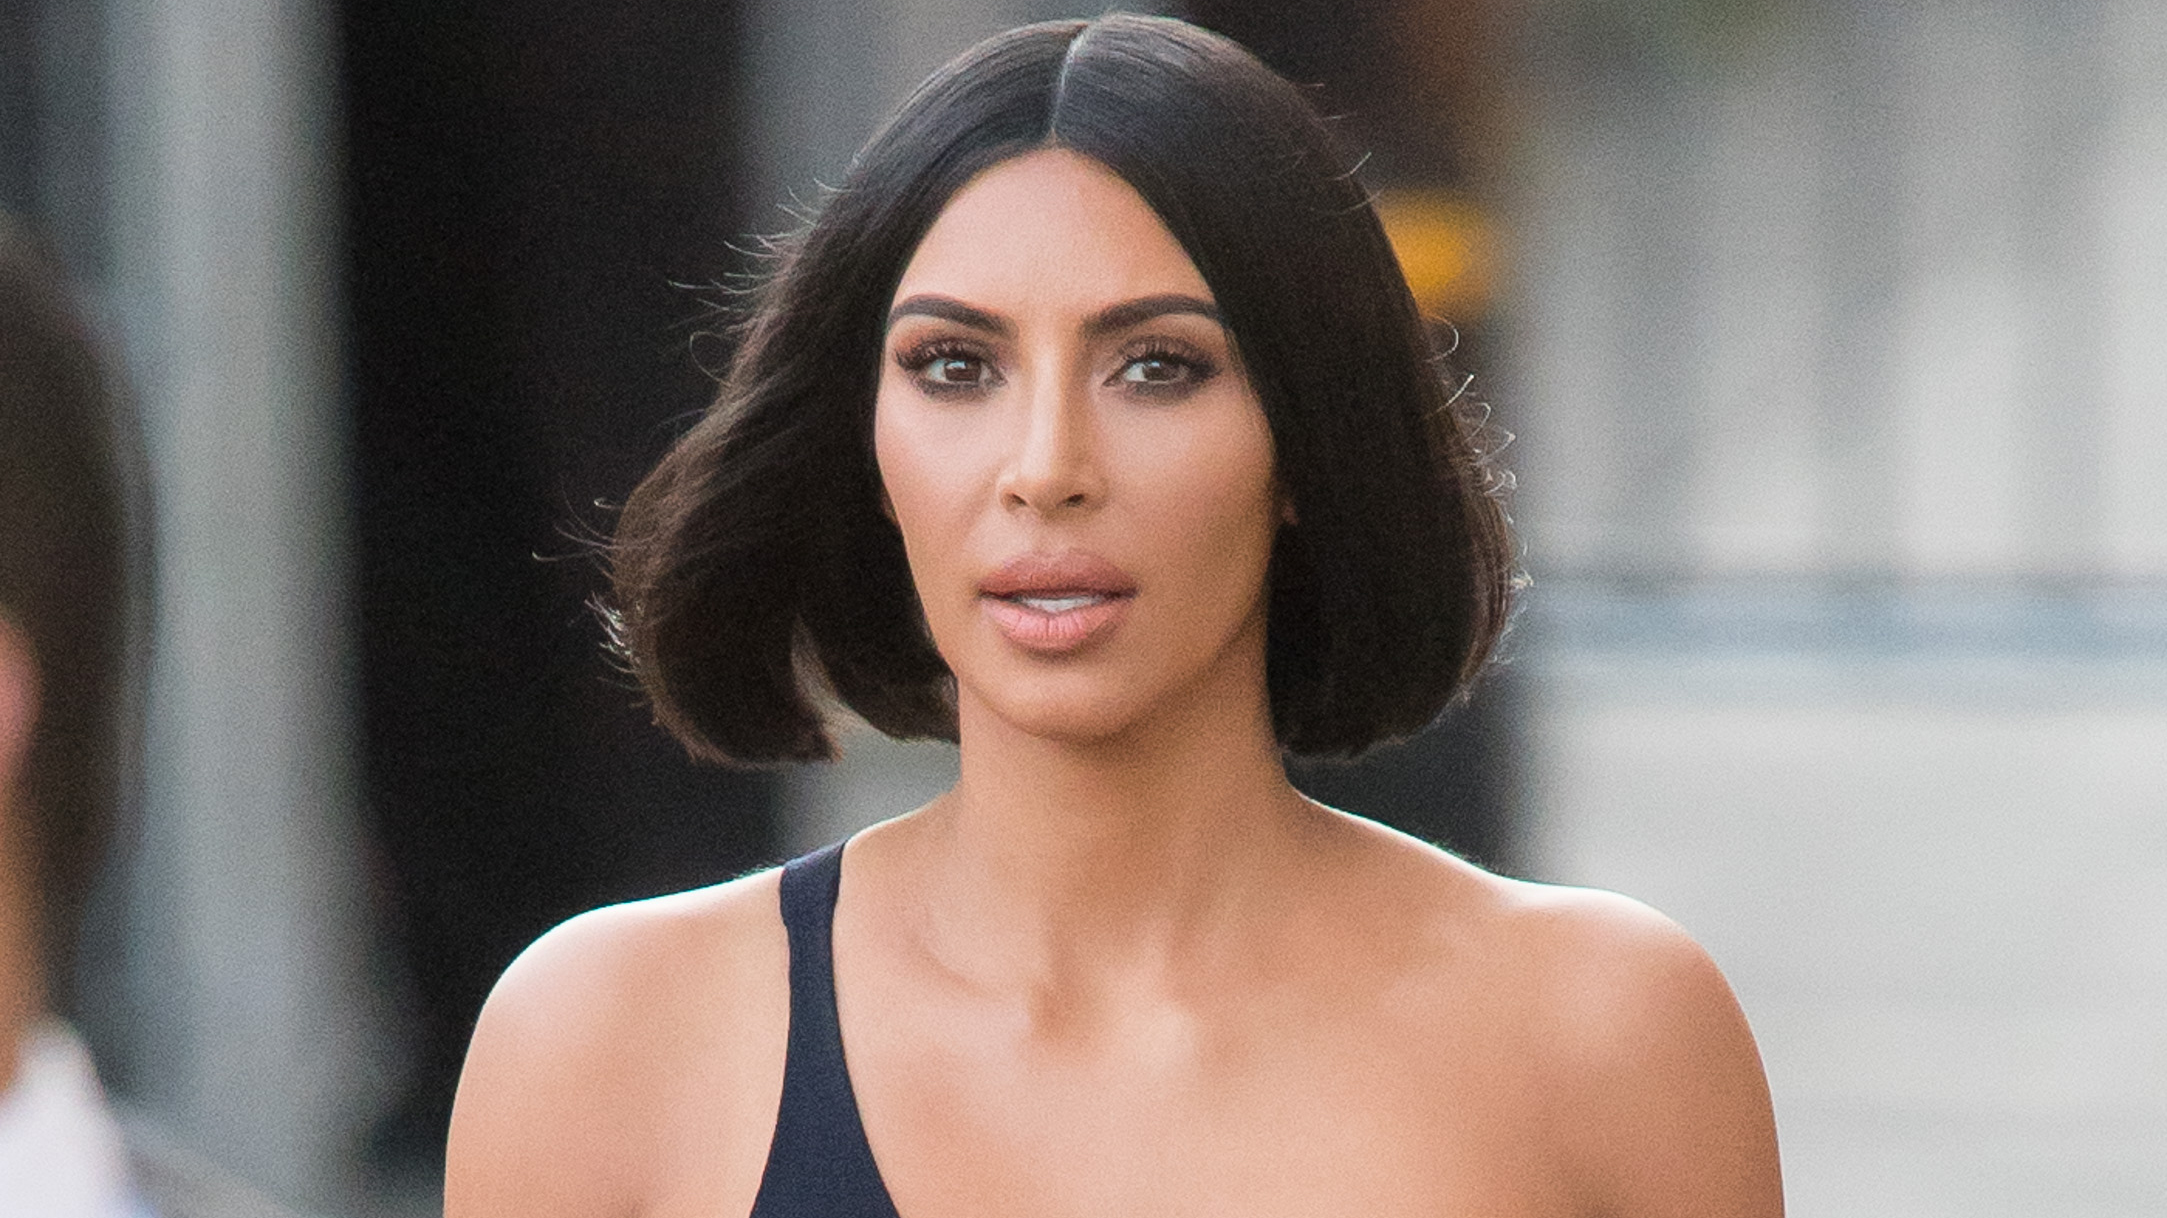 Kim Kardashian 'didn't know' Kanye West would bring out Marilyn Manson at 'Donda' event – Fox News